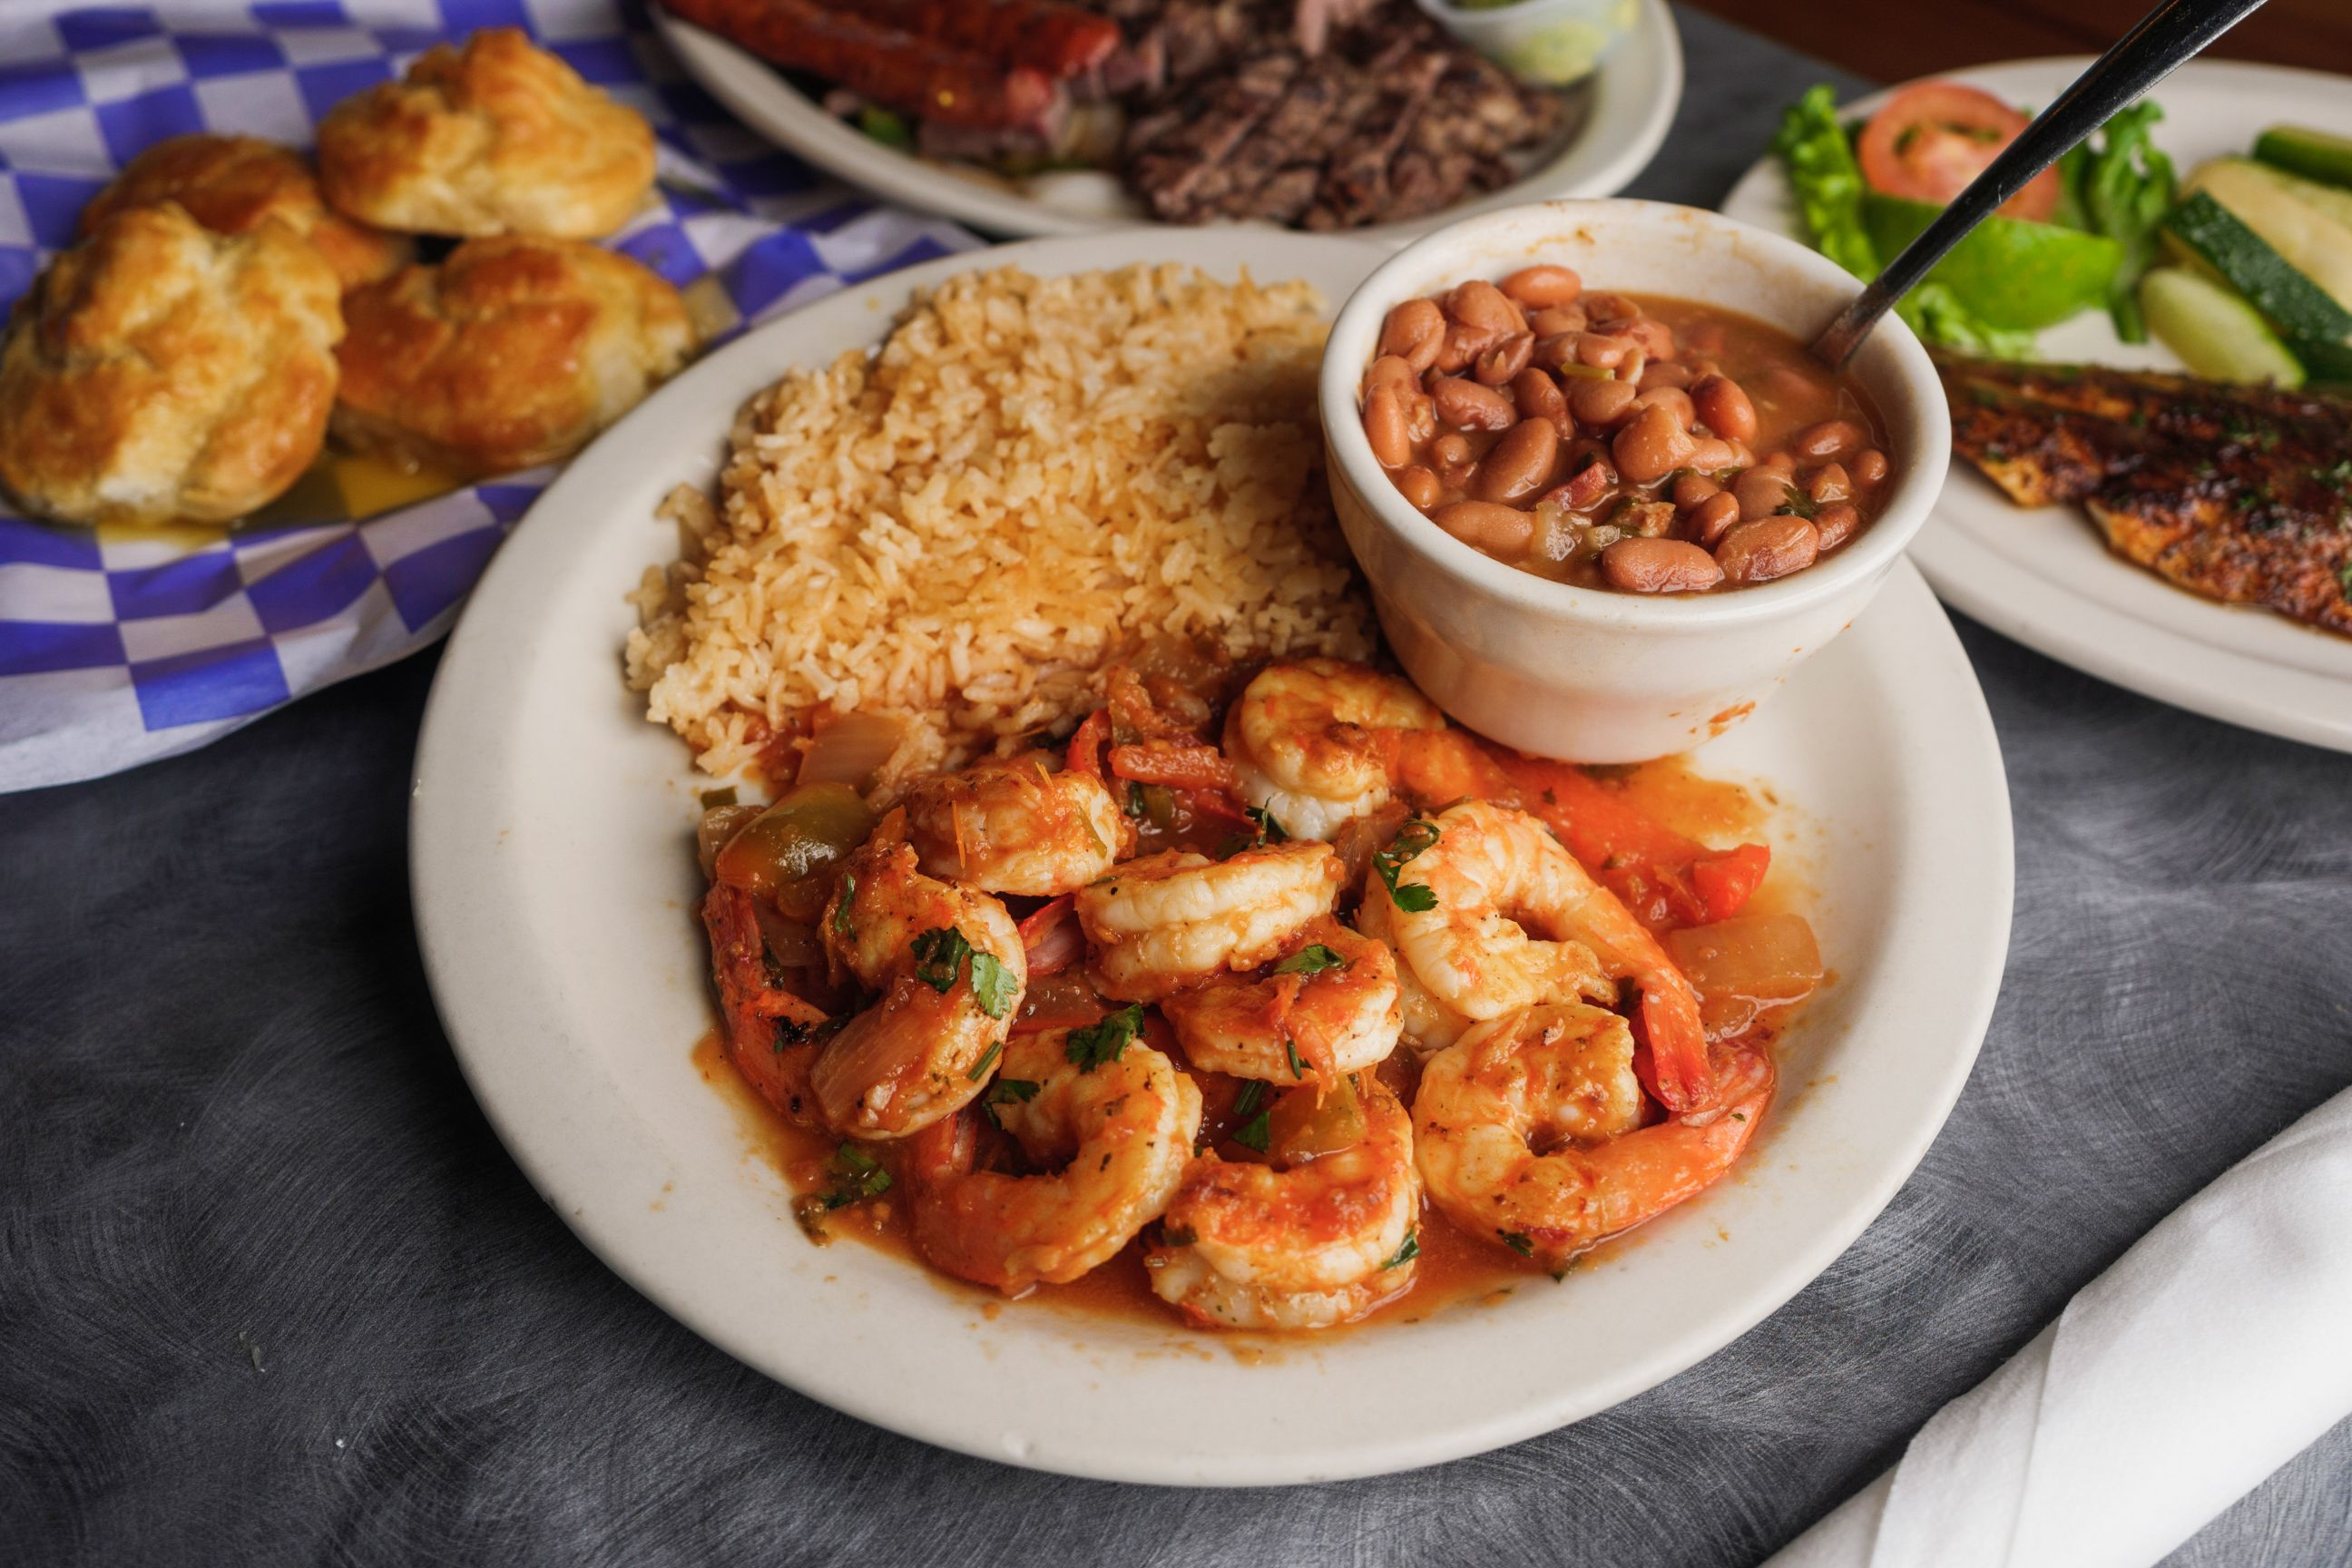 plate of shrimp, rice and baked beans with other entrees on a table